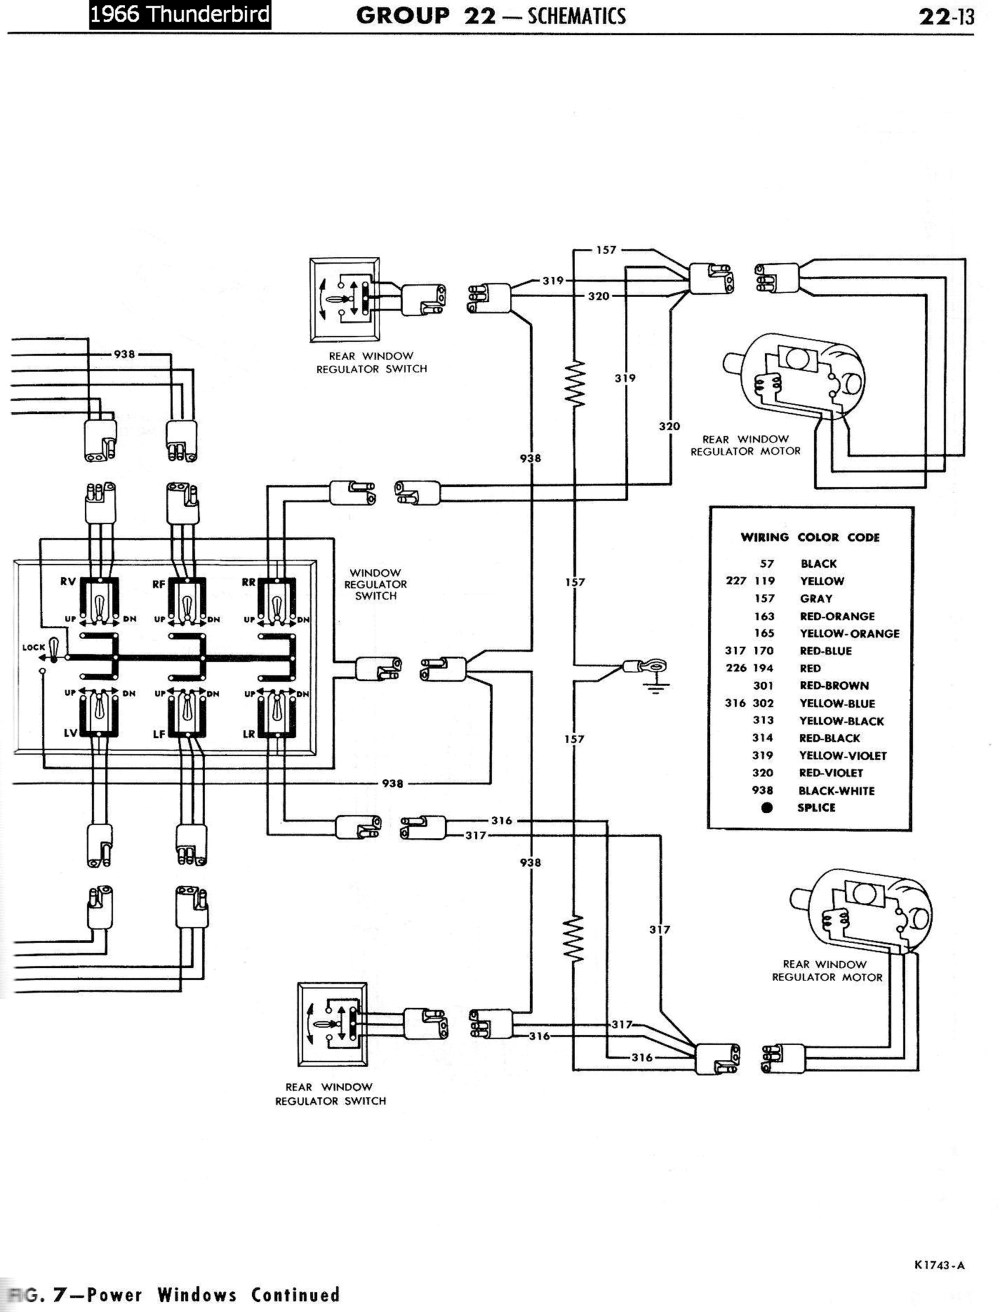 medium resolution of 1968 ford f100 fuel gauge wiring diagram wiring diagram todays 1968 f100 alternator wiring 1968 f100 blinker wiring diagrams